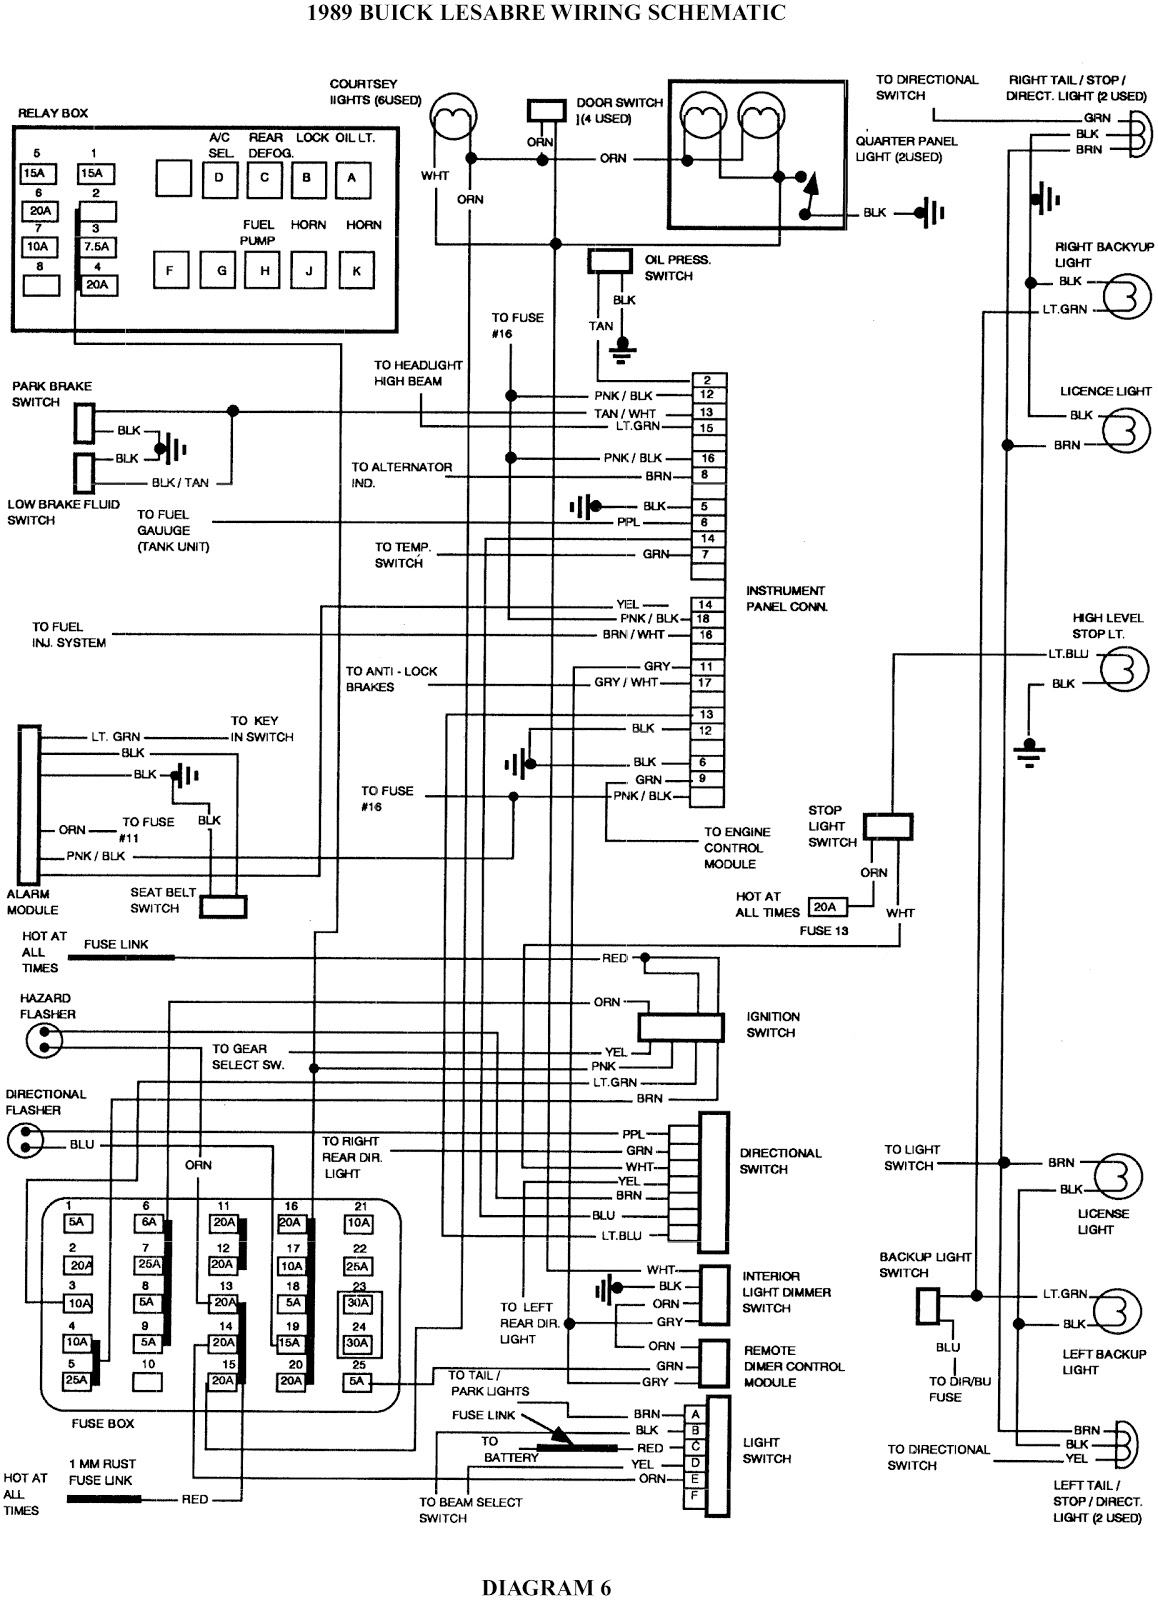 Mitsubishi Eclipse Stereo Wiring Diagram For Motorhome Batteries 1989 Buick Lesabre Schematic | Diagrams Solutions